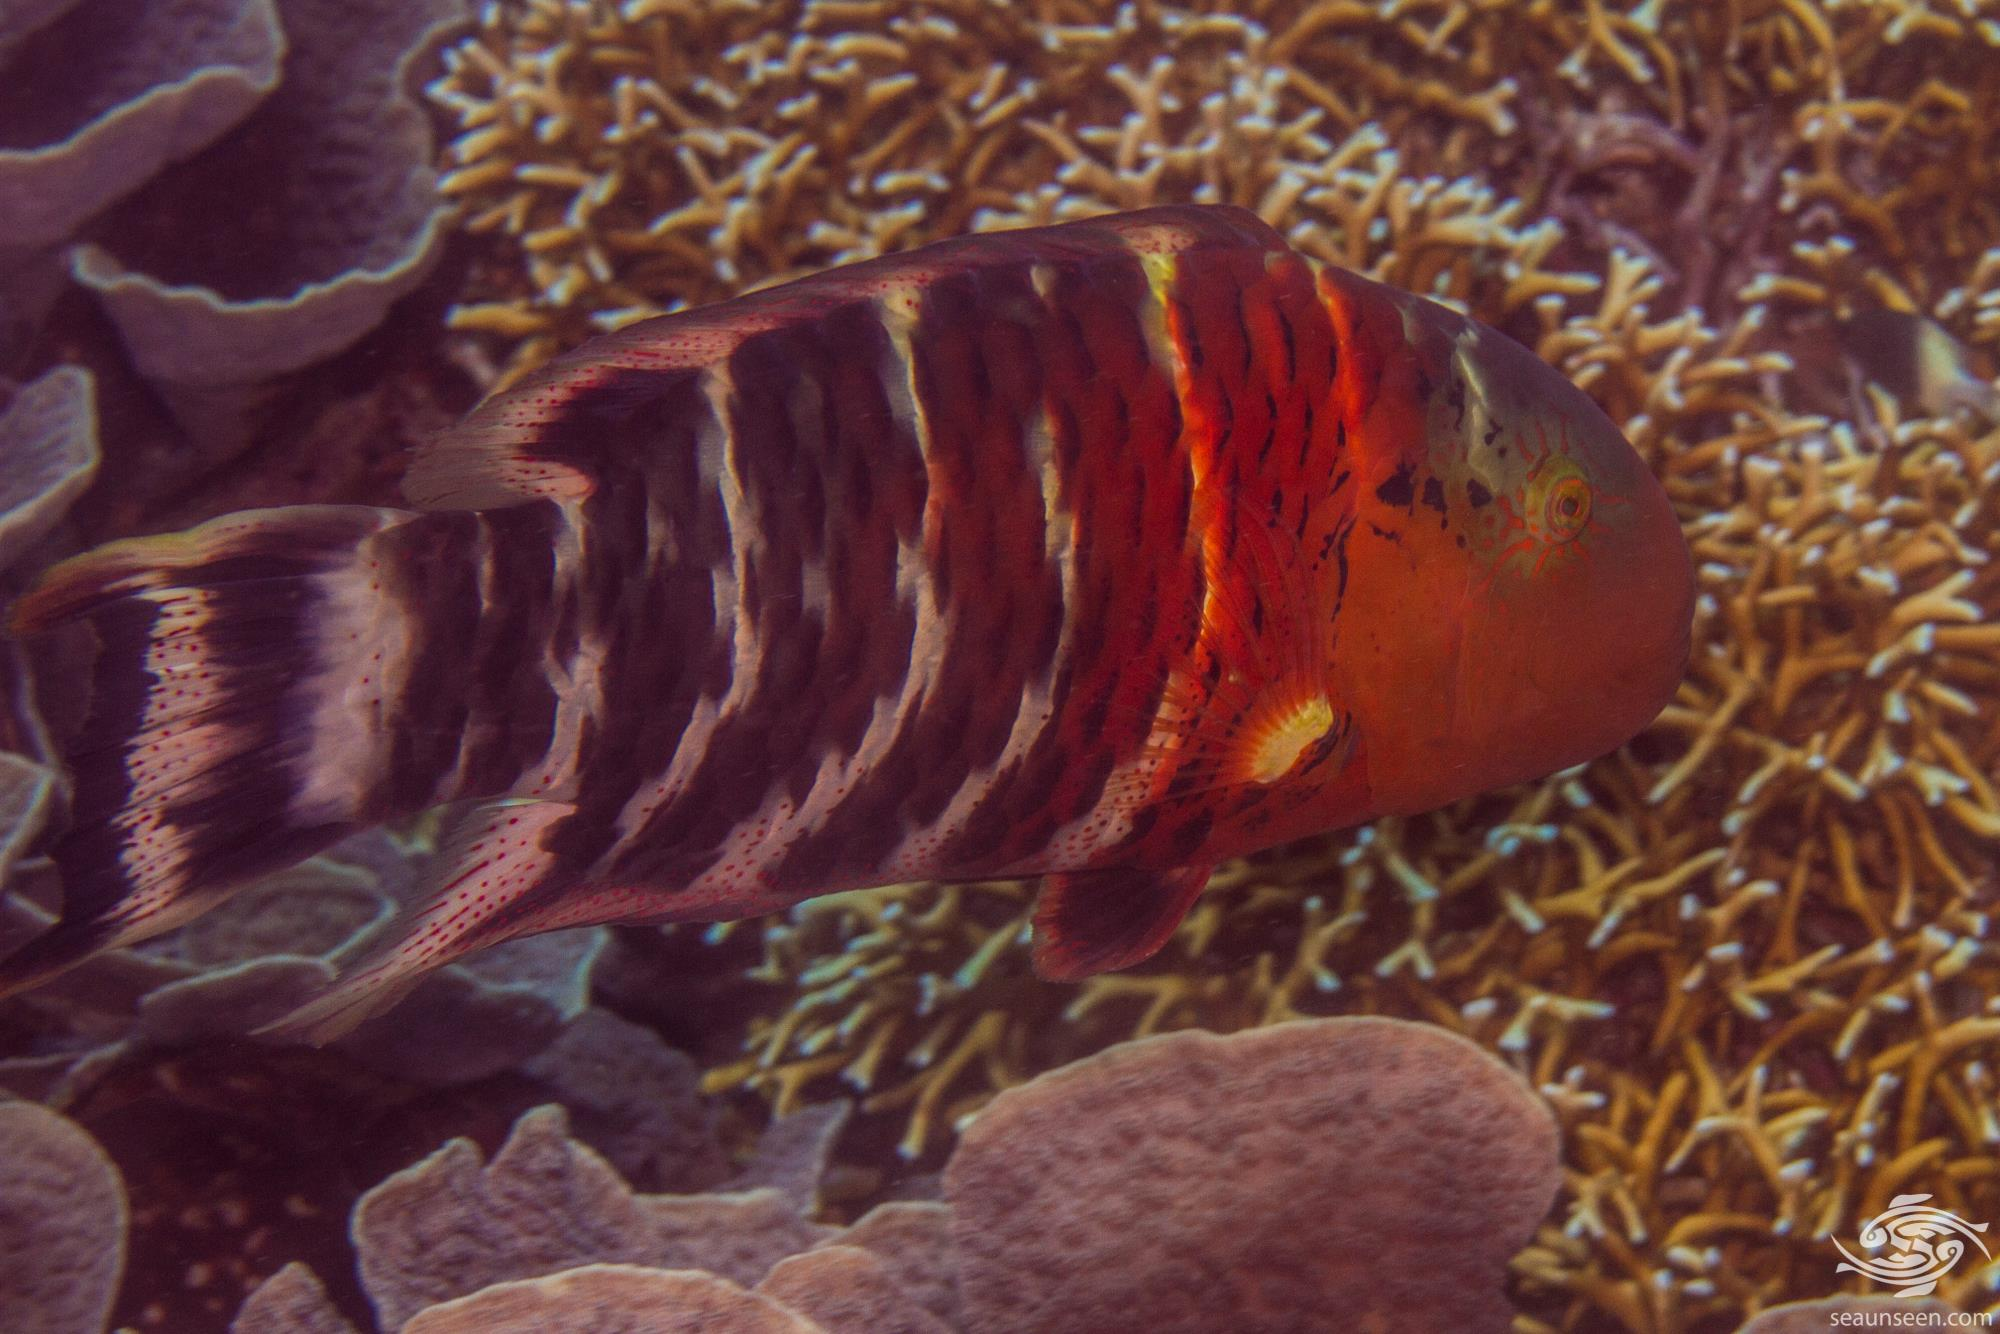 Red-breasted Wrasse (Cheilinus fasciatus) is also known as the Banded maori wrasse, the Red-banded wrasse and the Scarlet-breasted wrasse